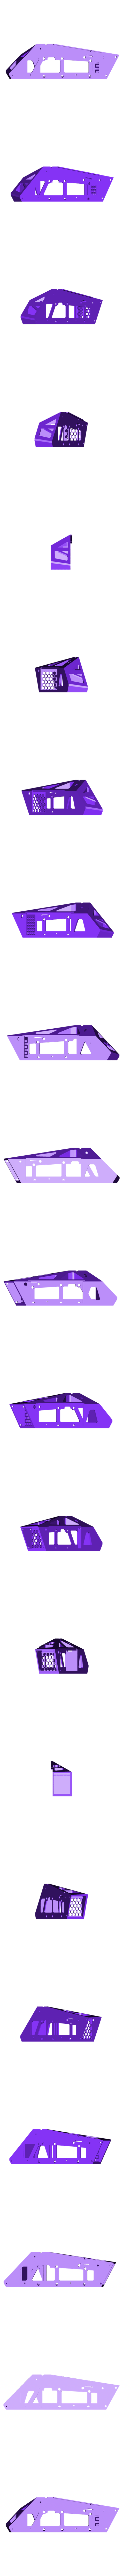 Left_Replacement_Battery_Boxes.stl Download STL file Chassis 6s Replacement Battery Boxes • 3D print object, MaDdIaBlO